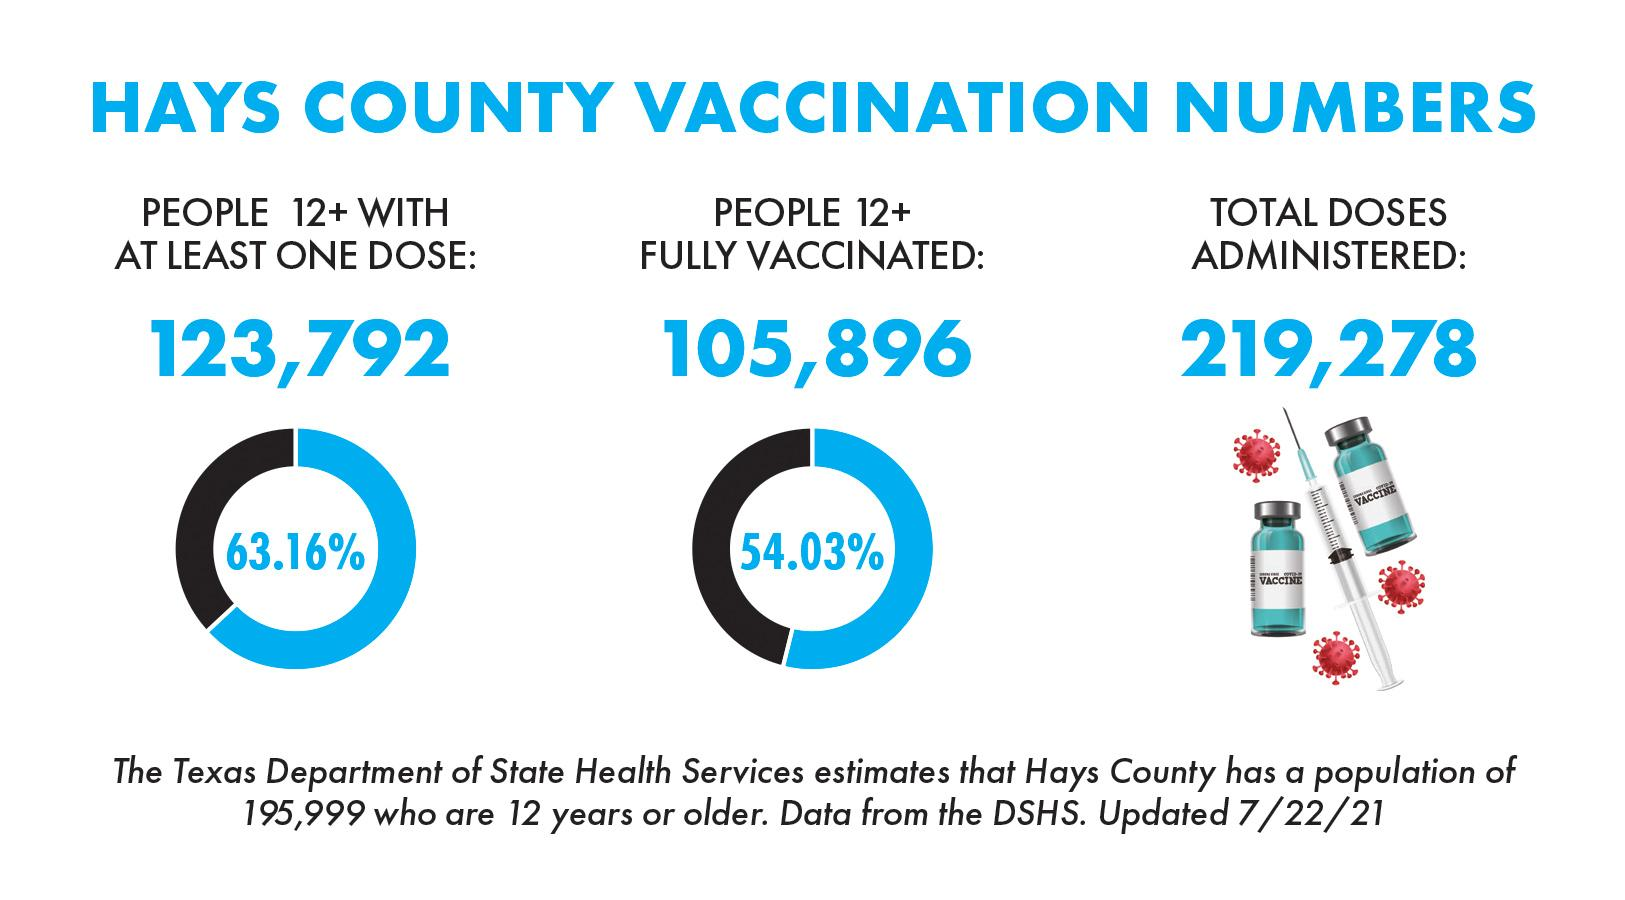 Nearly 106,000 Hays County residents fully vaccinated against COVID-19